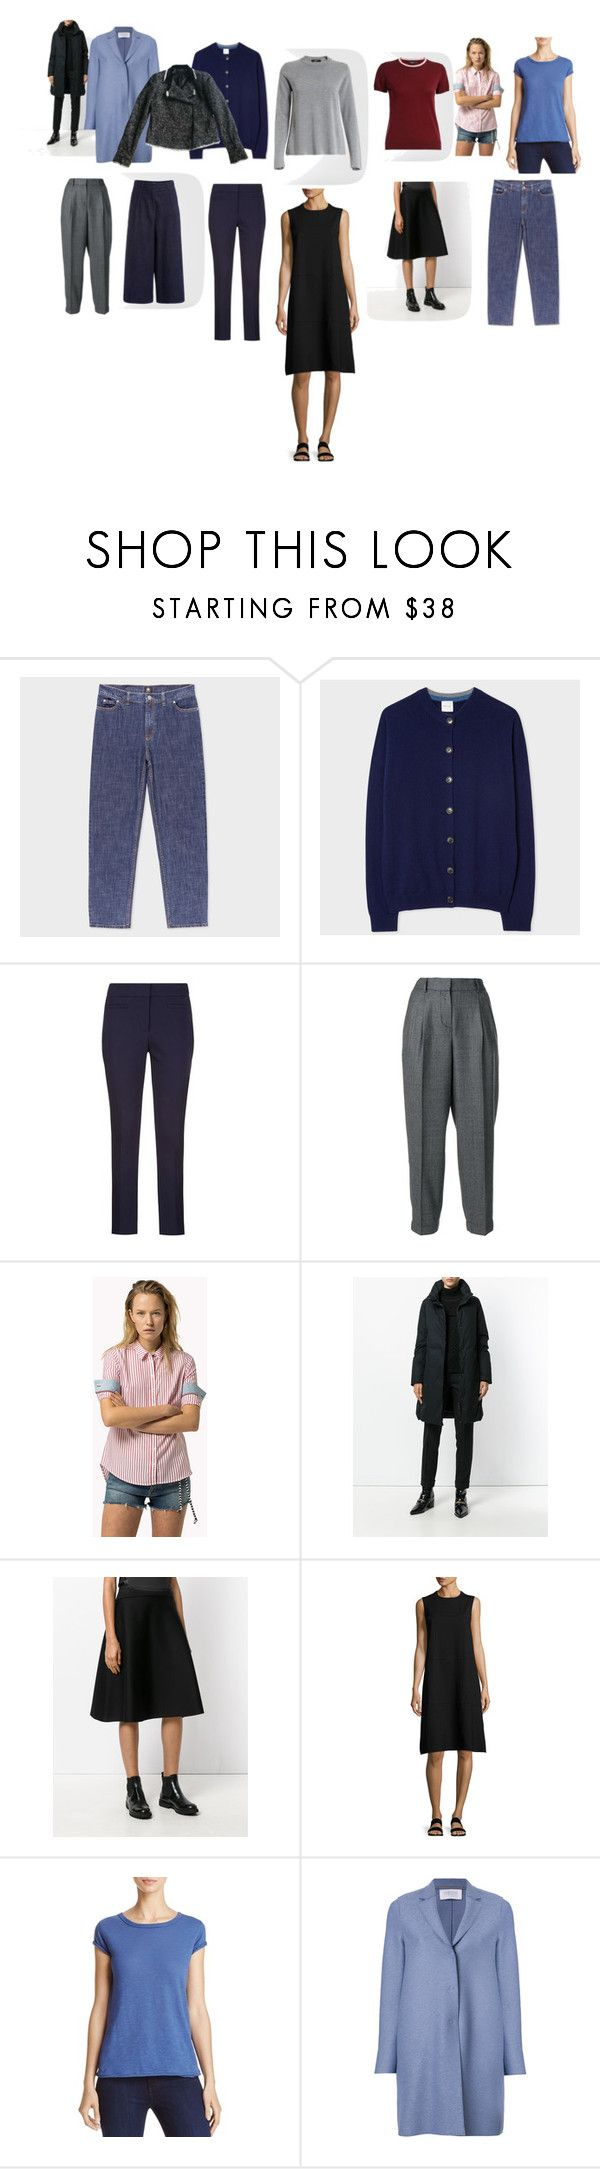 """""""draft 3"""" by milasnotes on Polyvore featuring мода, PS Paul Smith, Paul Smith, Incotex, Woolrich, Chalayan, The Row, Free People, Harris Wharf London и Karl Lagerfeld"""